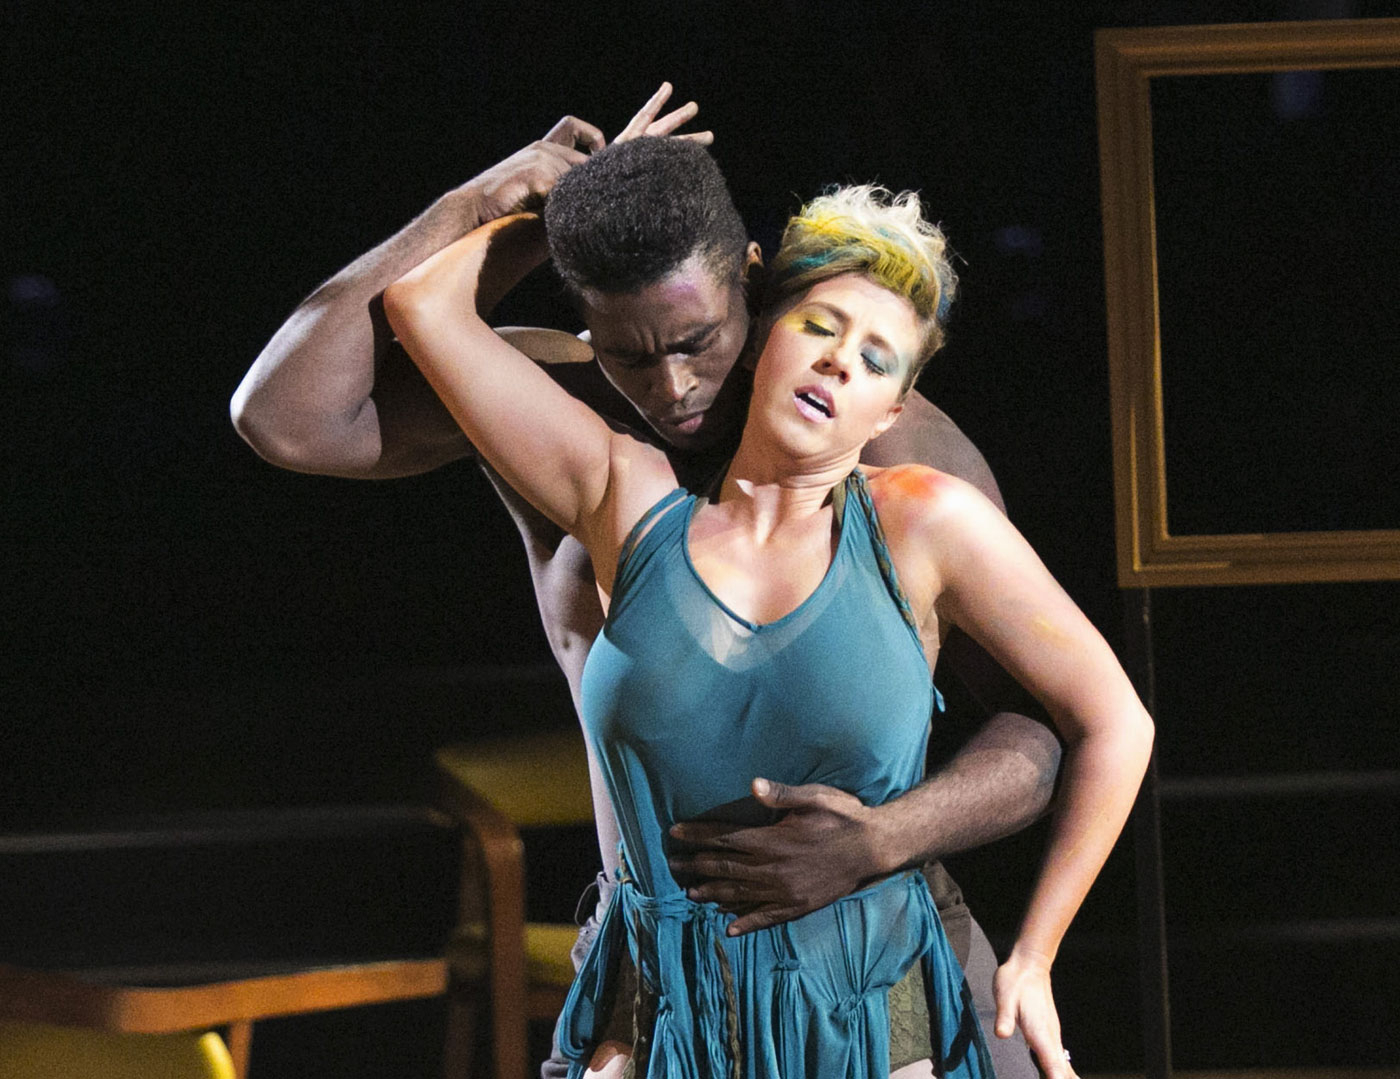 Jodie Sweetin and Keo Motsepe on 'Dancing With the Stars'